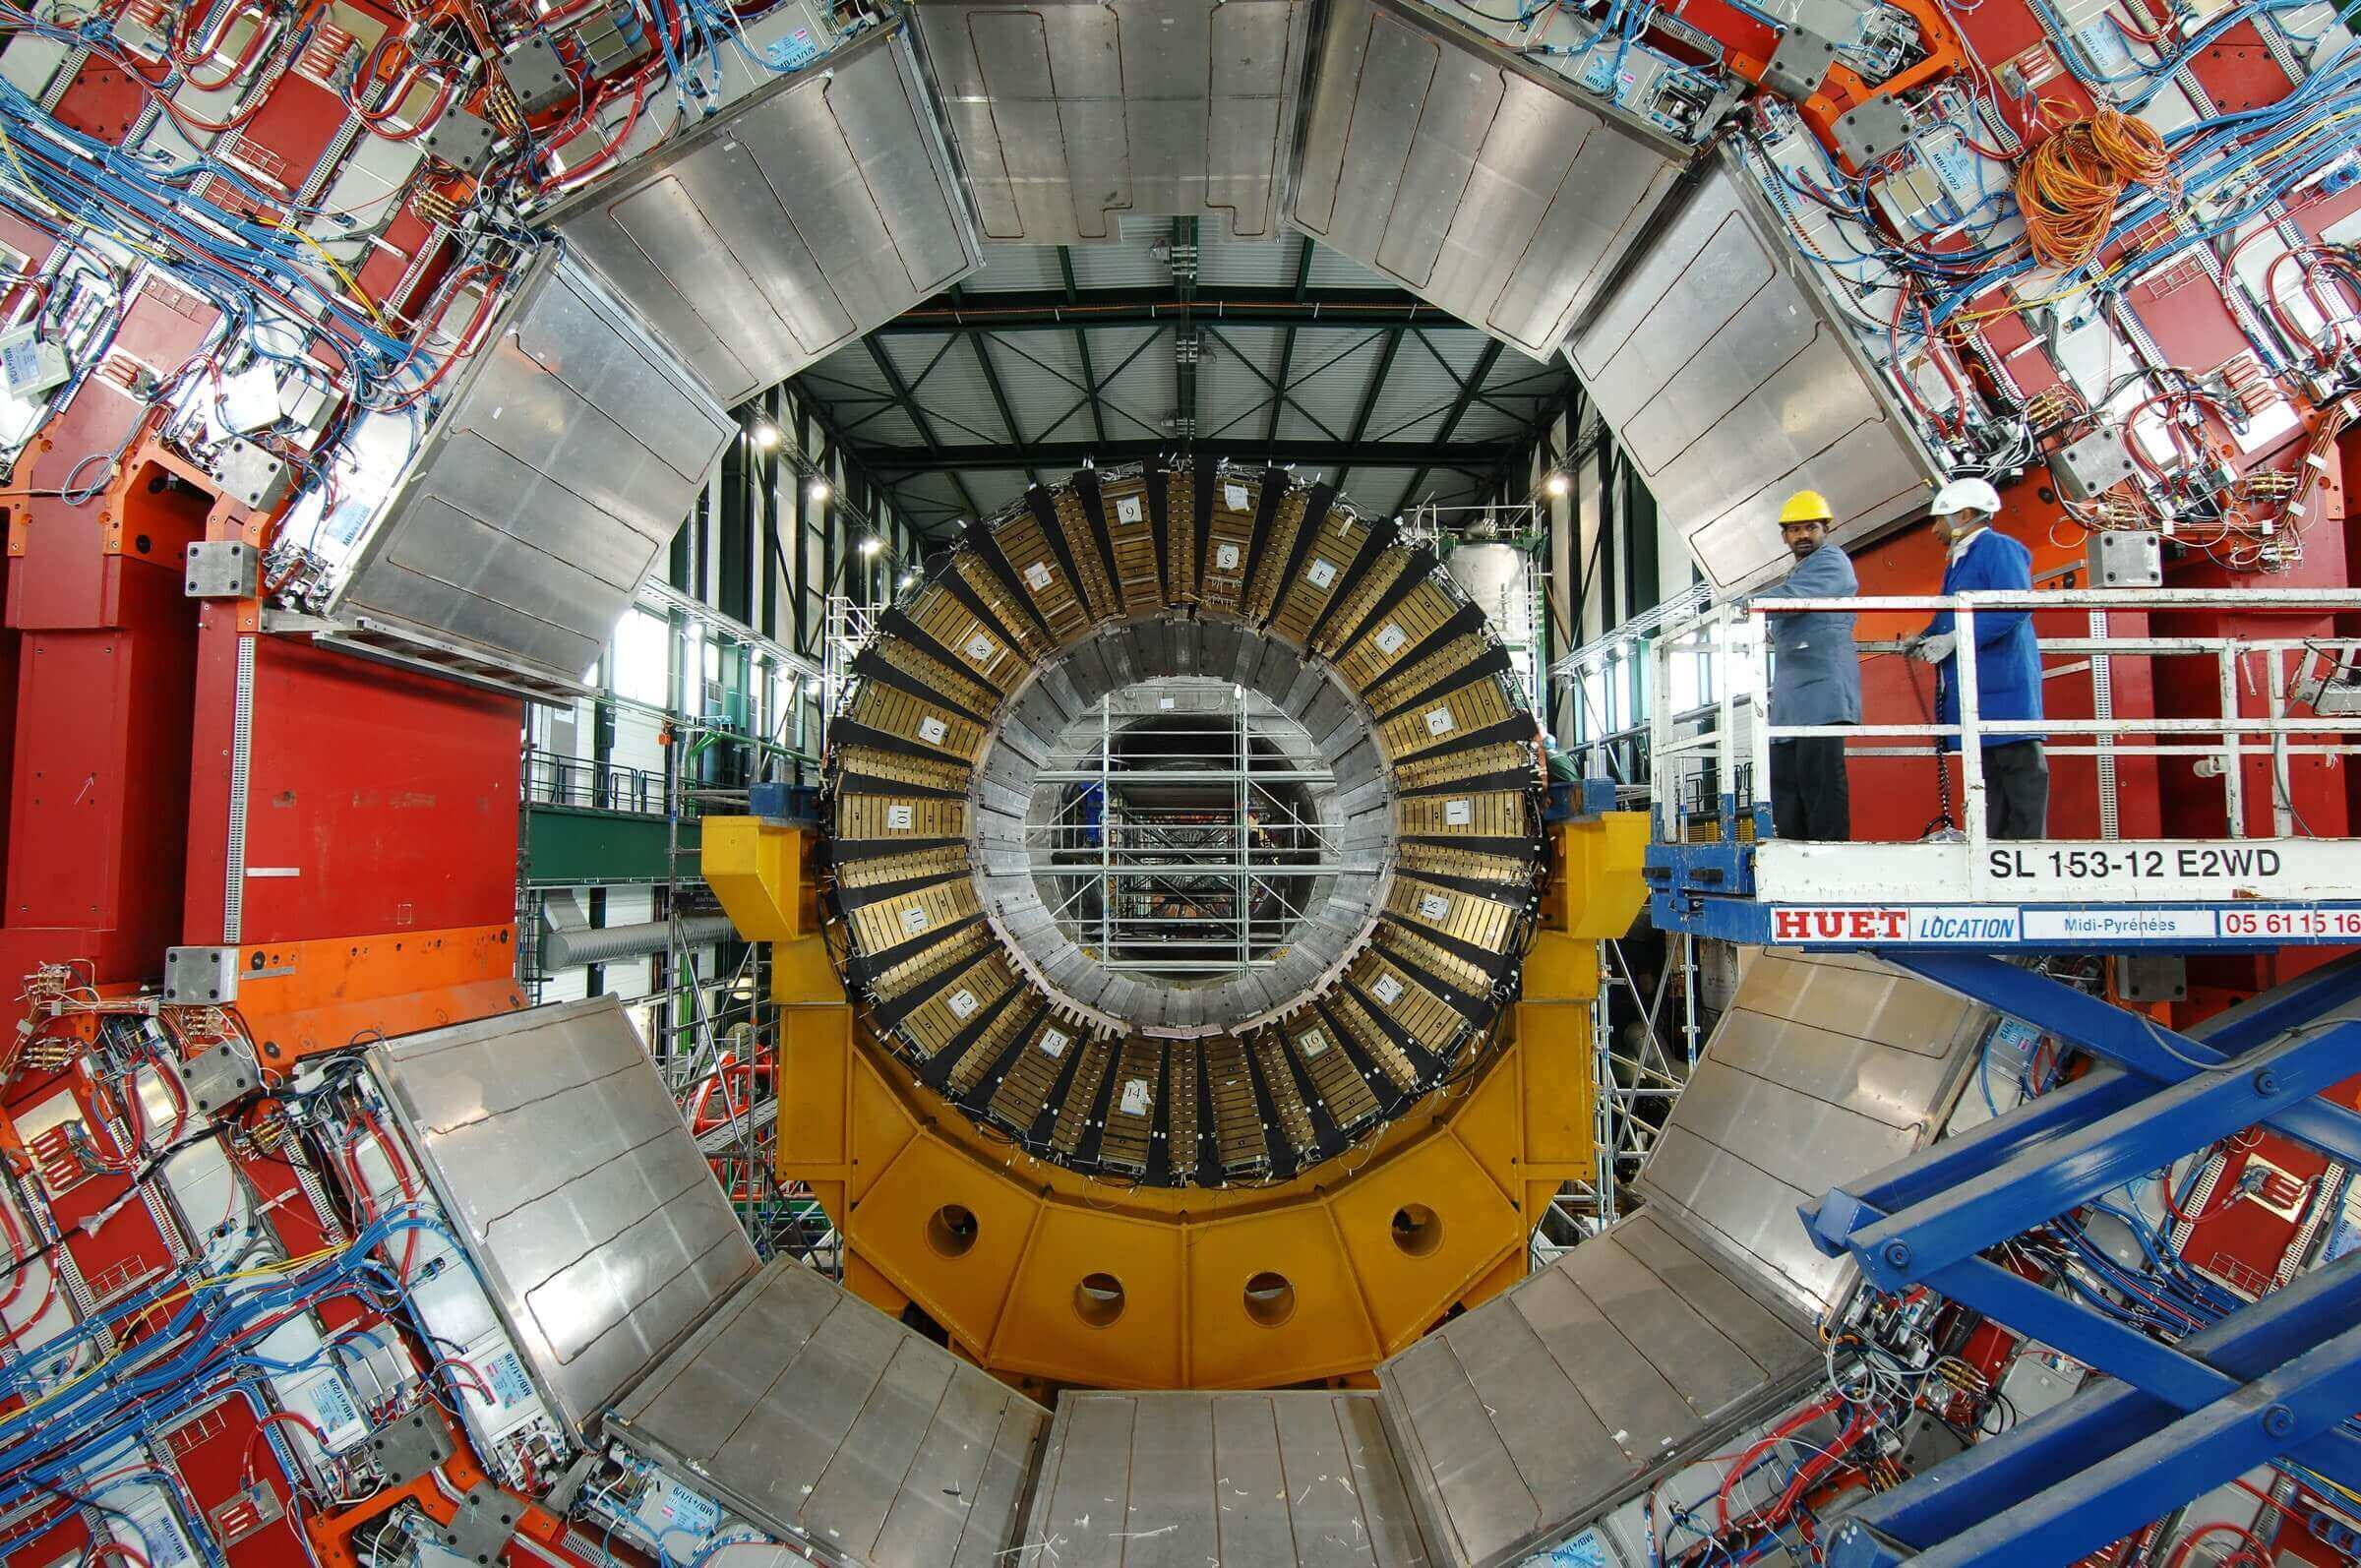 Physicists Learn to Superfreeze Antimatter (Hint: Pew Pew!)Physicists Learn to Superfreeze Antimatter (Hint: Pew Pew!)Physicists Learn to Superfreeze Antimatter (Hint: Pew Pew!)